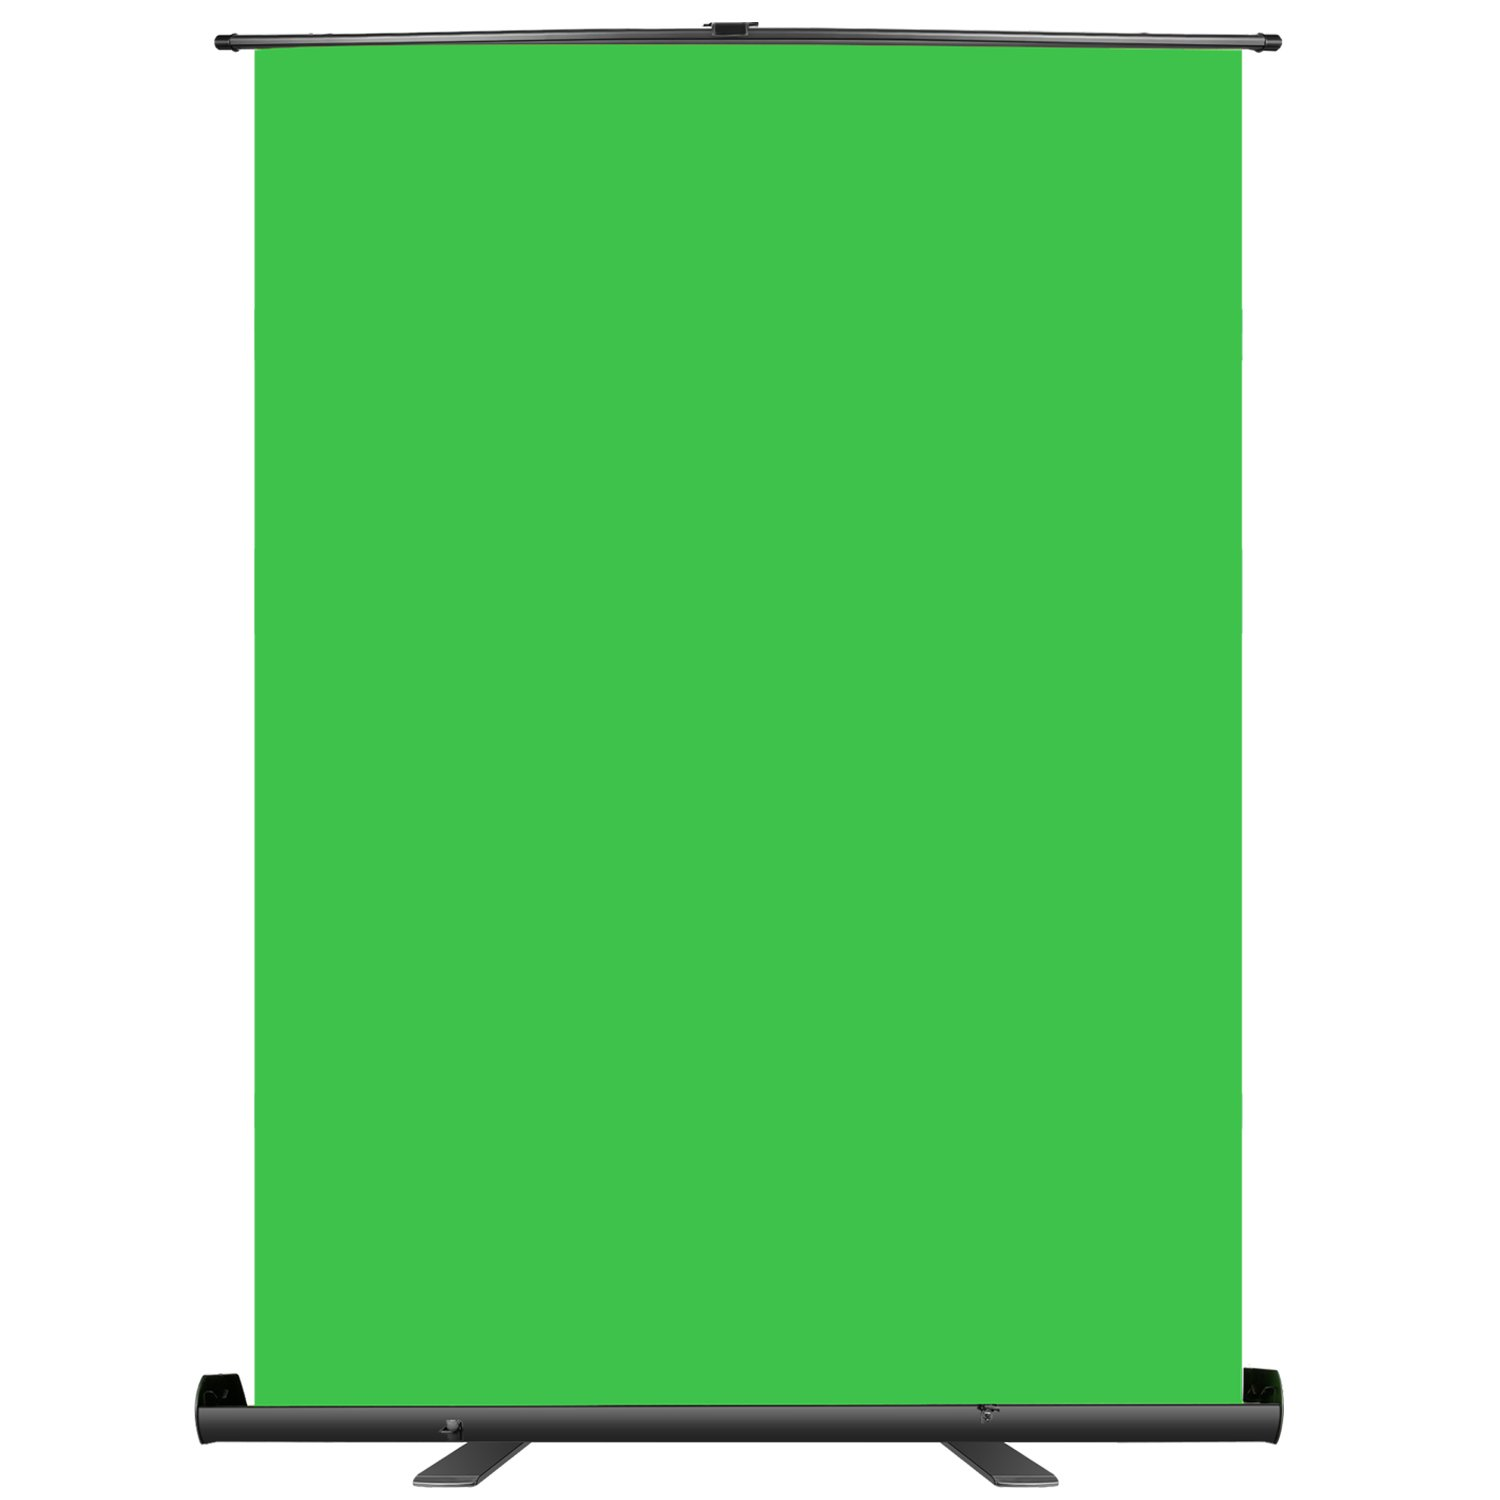 Neewer Green Screen Backdrop, Pull-up Style, Portable Collapsible Chromakey Background with Auto-locking Frame, Wrinkle-resistant Fabric,Solid Aluminium Base, for Photo Video, Live Game,Virtual Studio